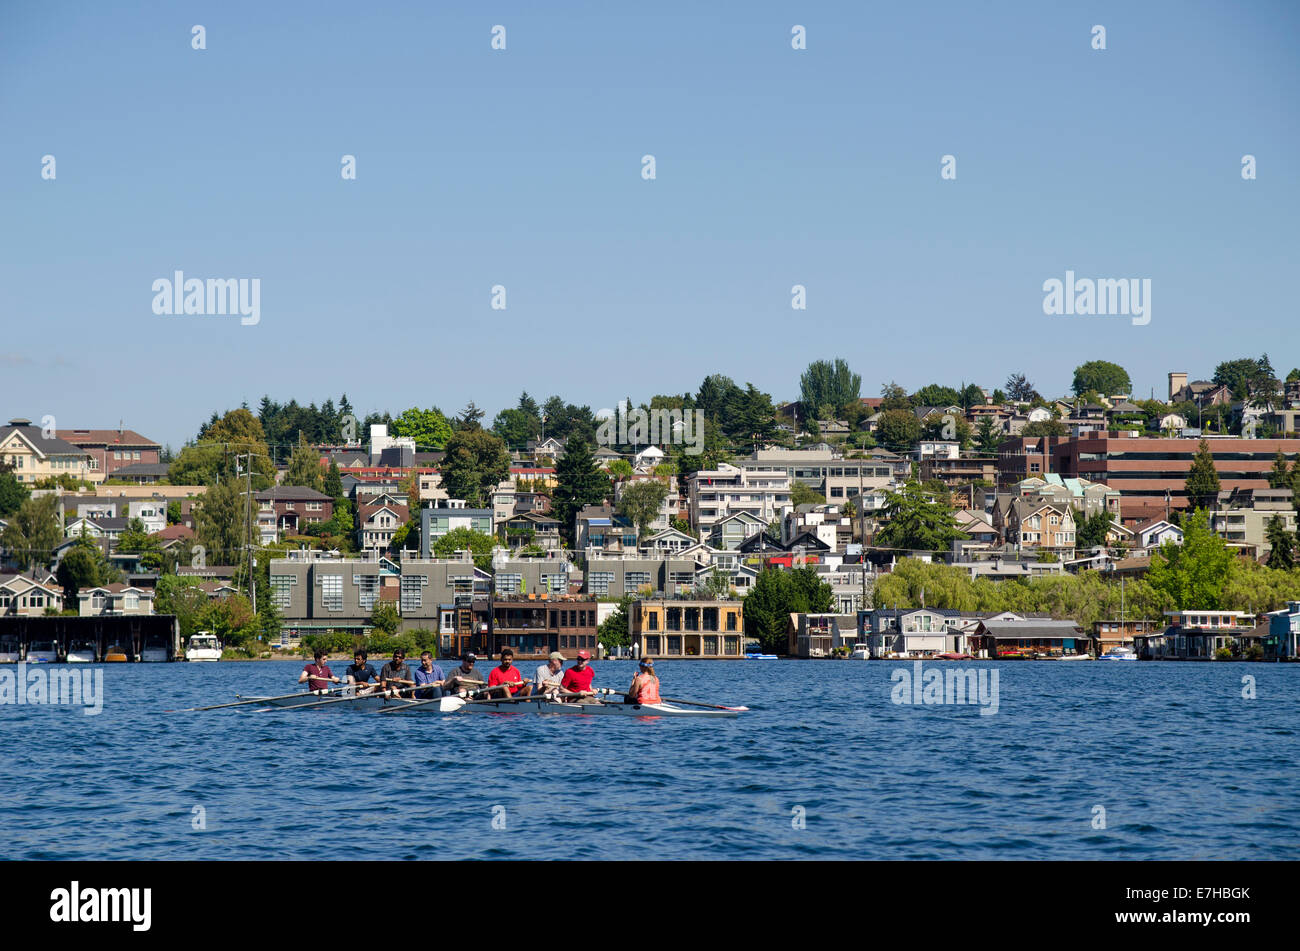 View of rowers on Lake Union, Seattle - Stock Image